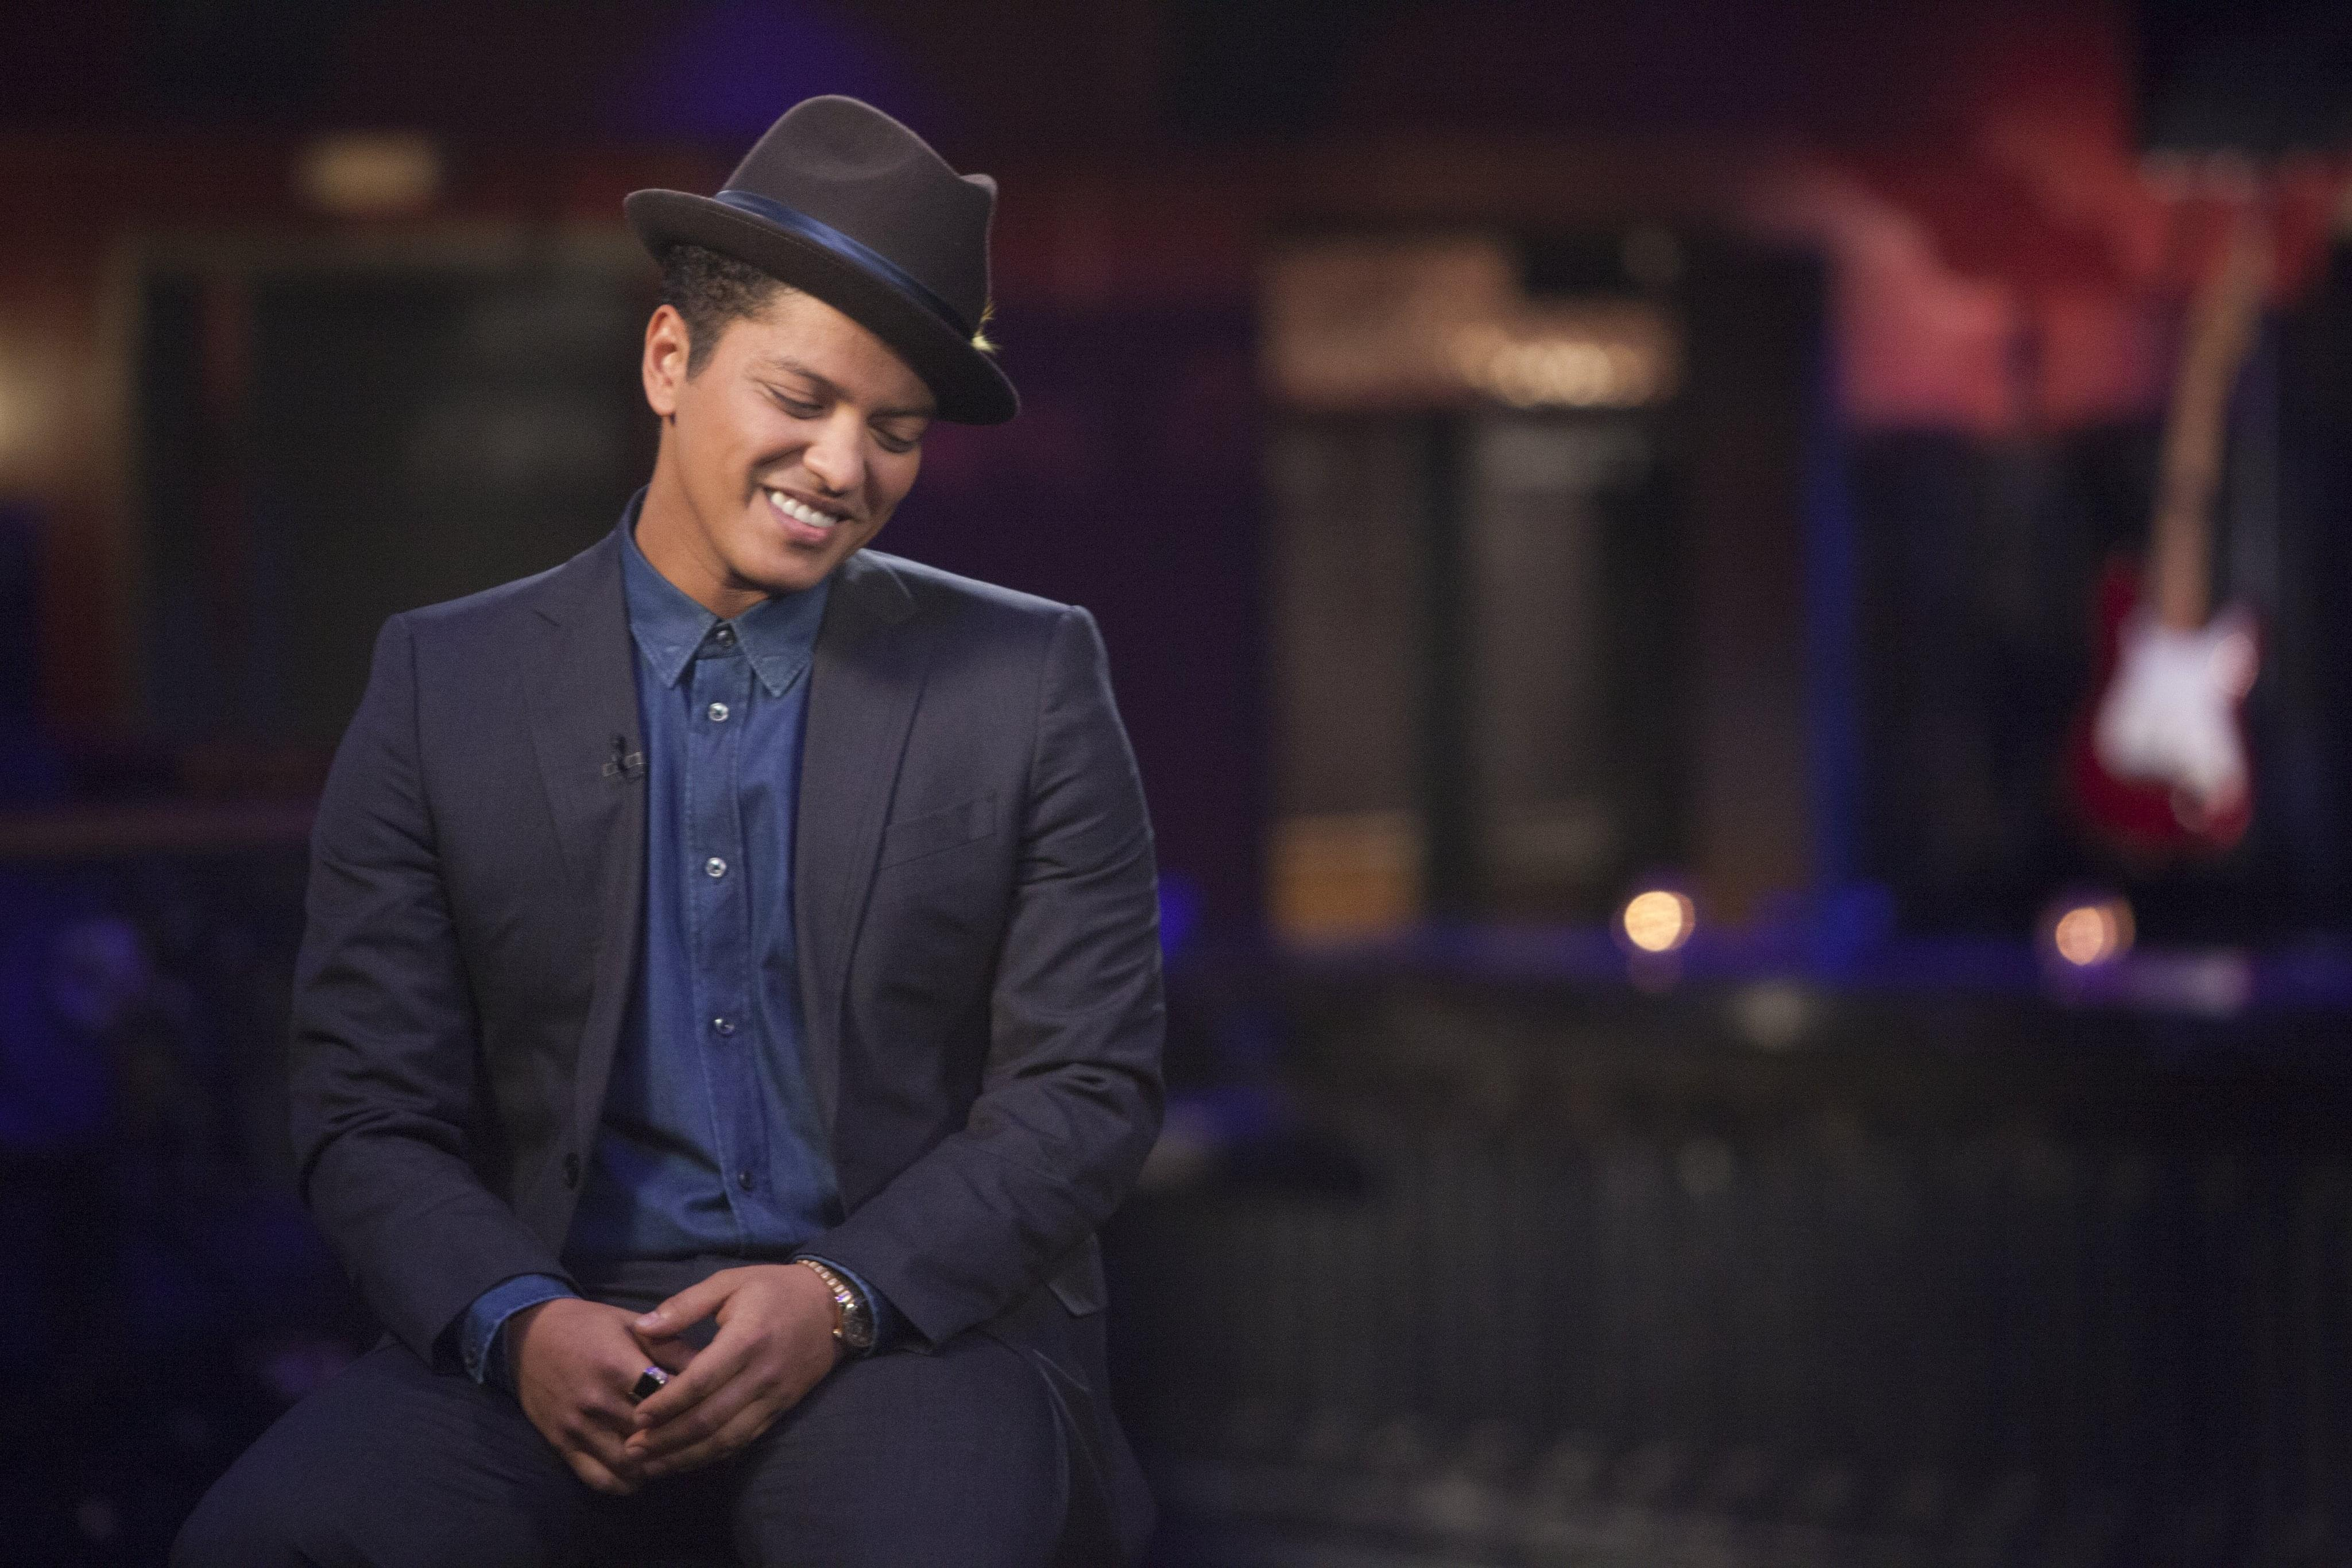 Bruno Mars Celebrates His Birthday With Ed Sheeran